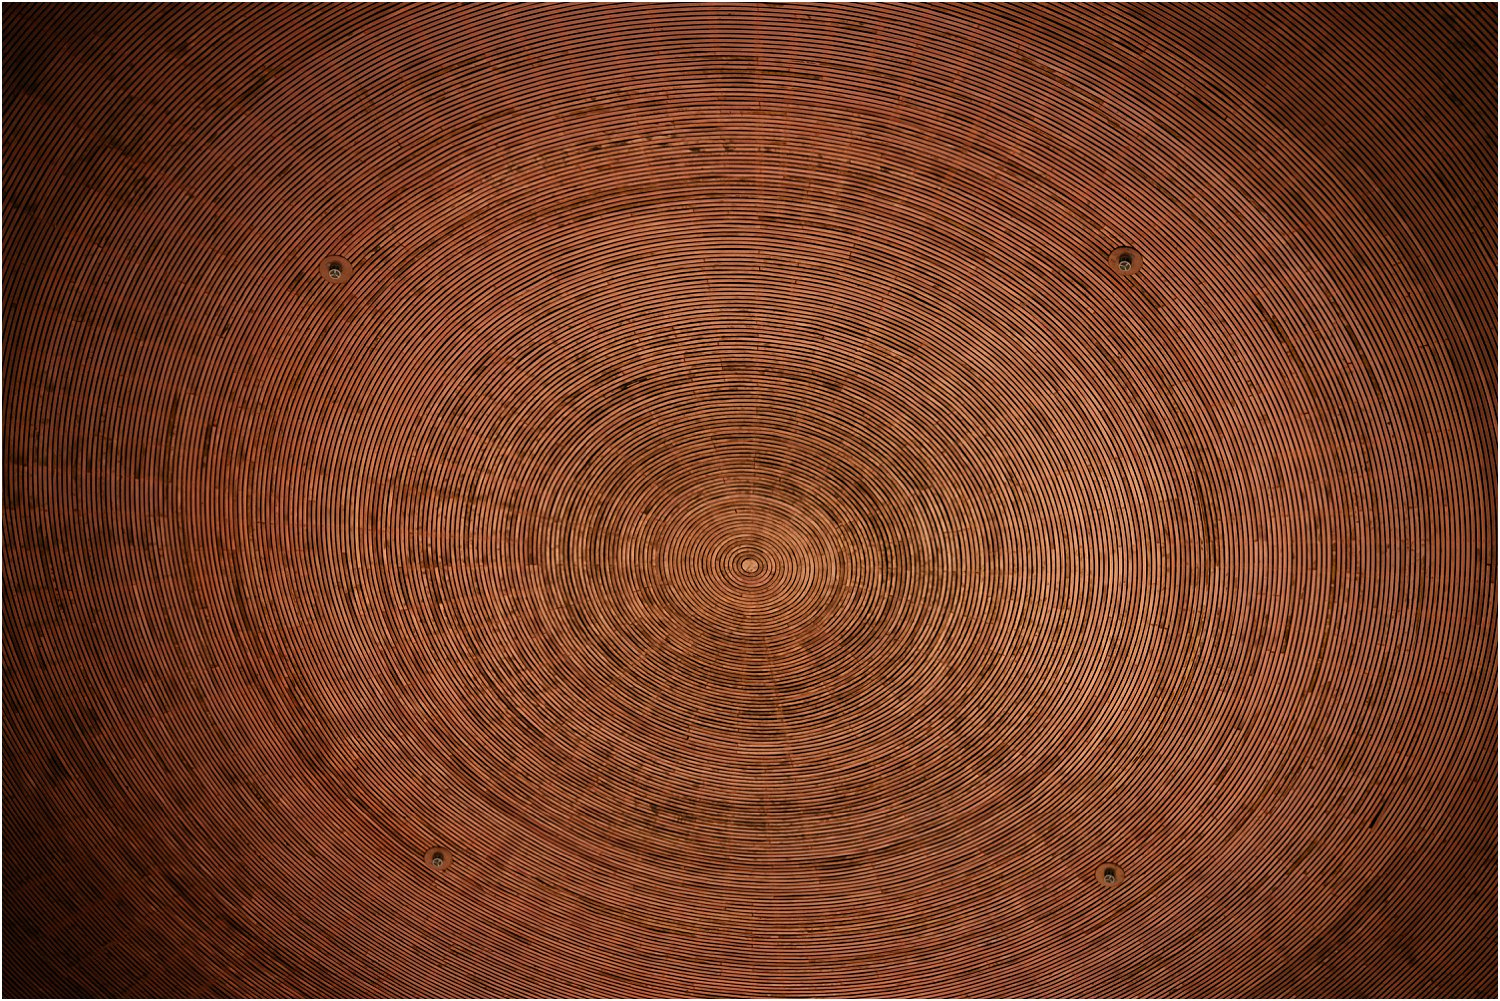 DPS photography by Lily Sawyer – circles repeated in wood